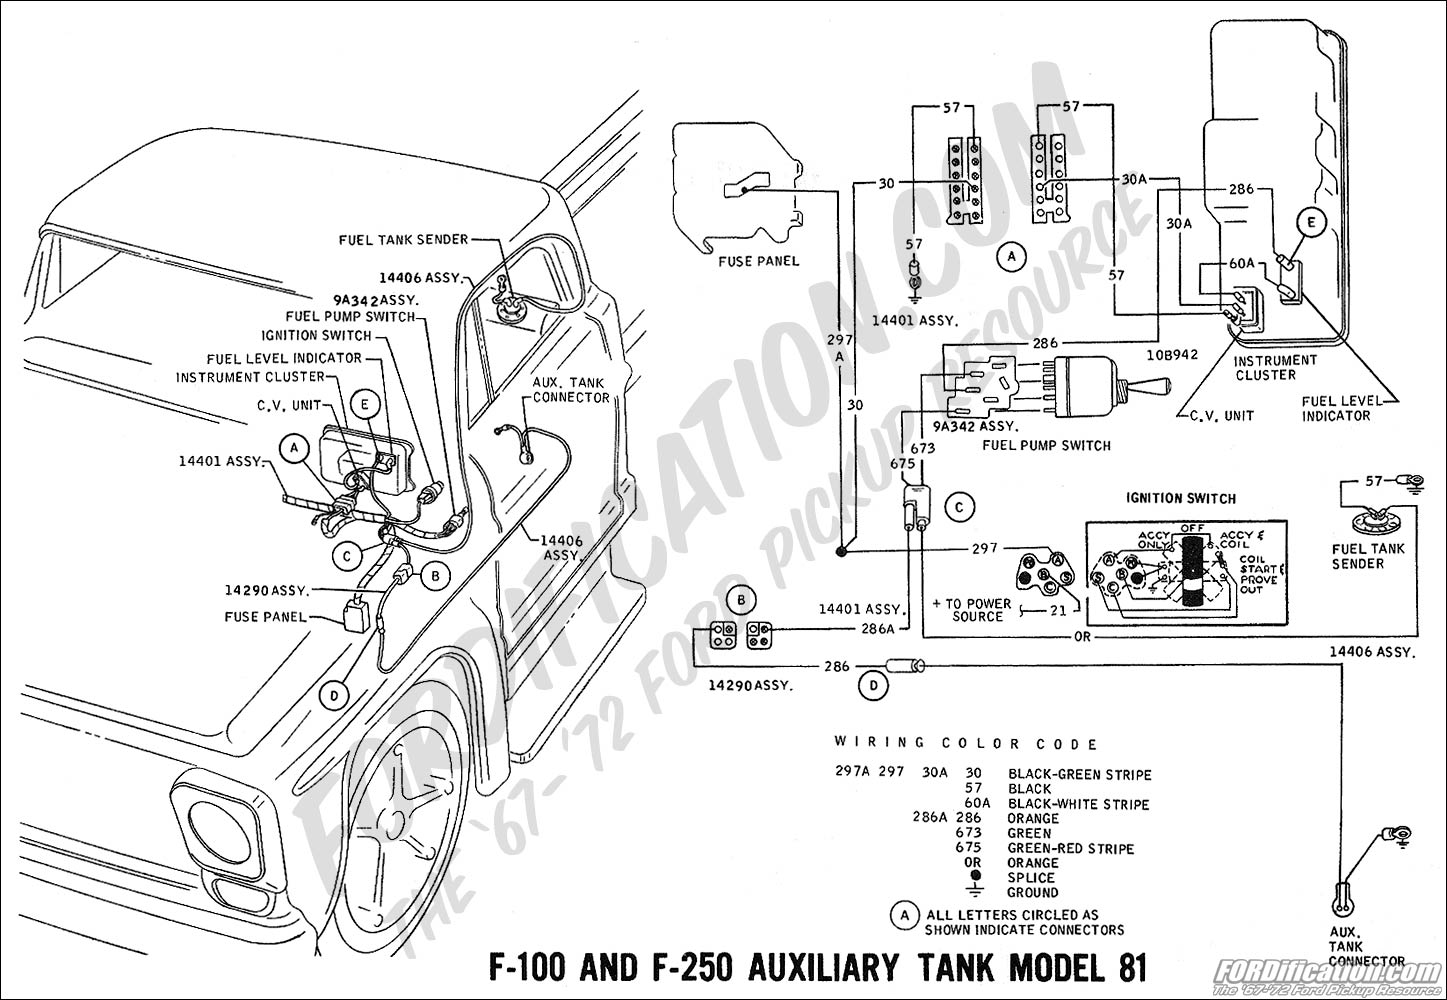 Ford truck technical drawings and schematics section h wiring 1988 Ford Fuse Box Diagram 2009 F250 Fuse Box Diagram 2007 F250 Fuse Box